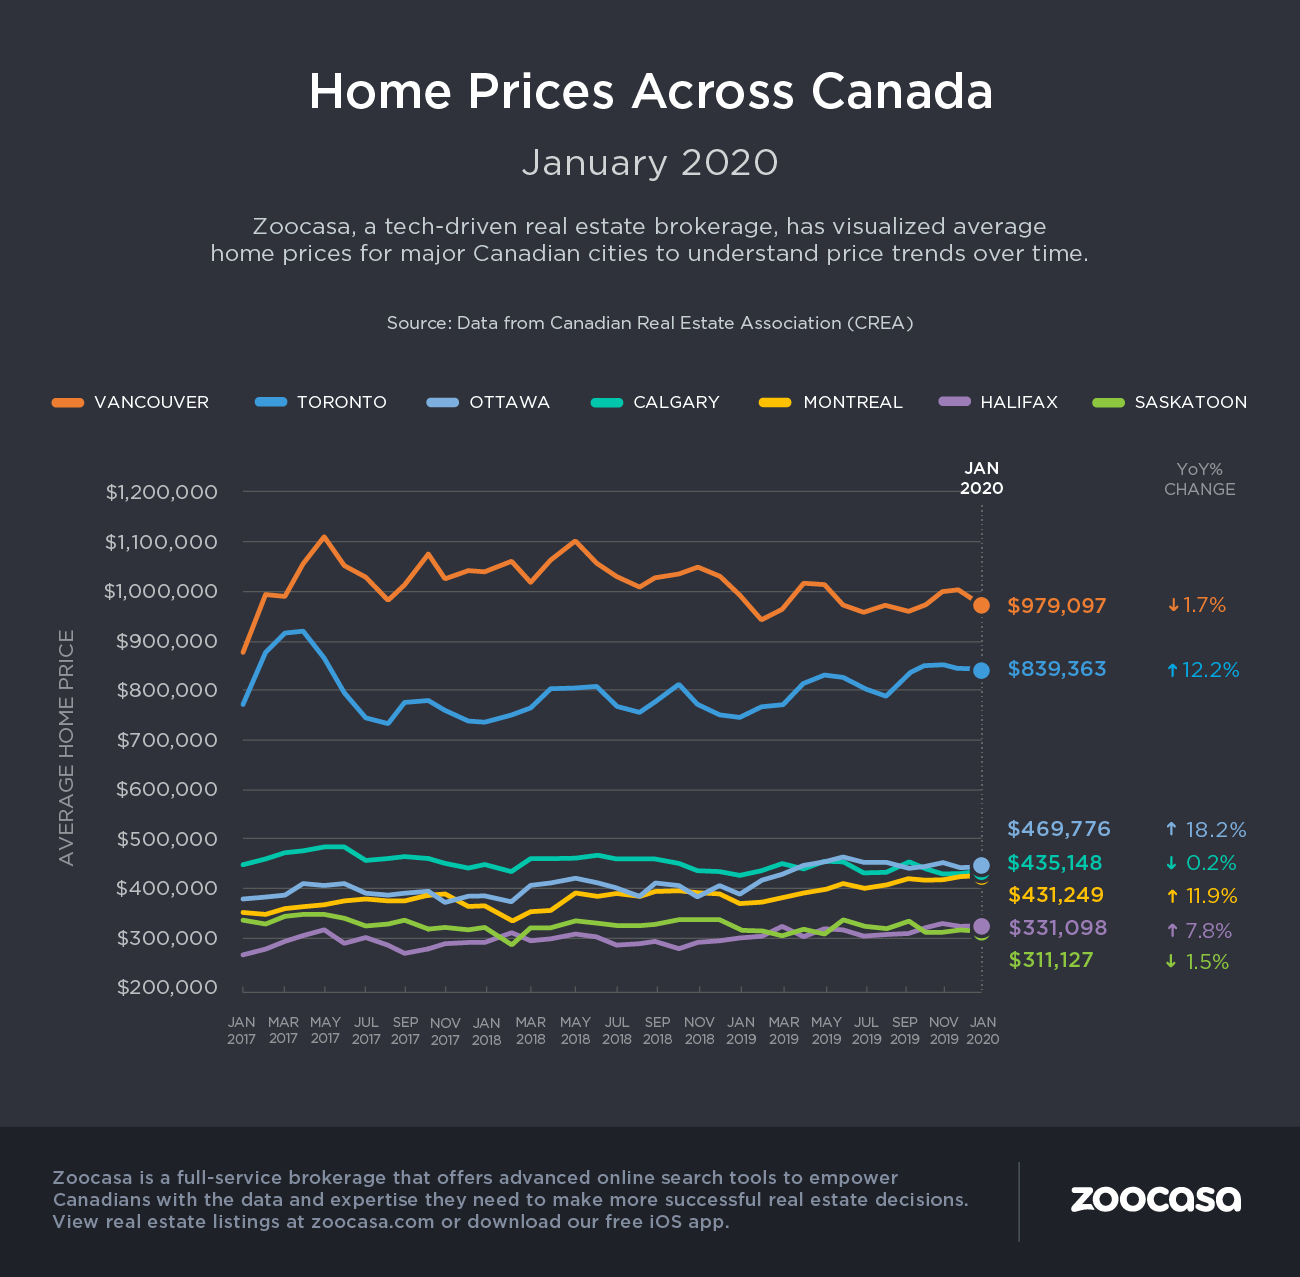 CREA home prices January 2020